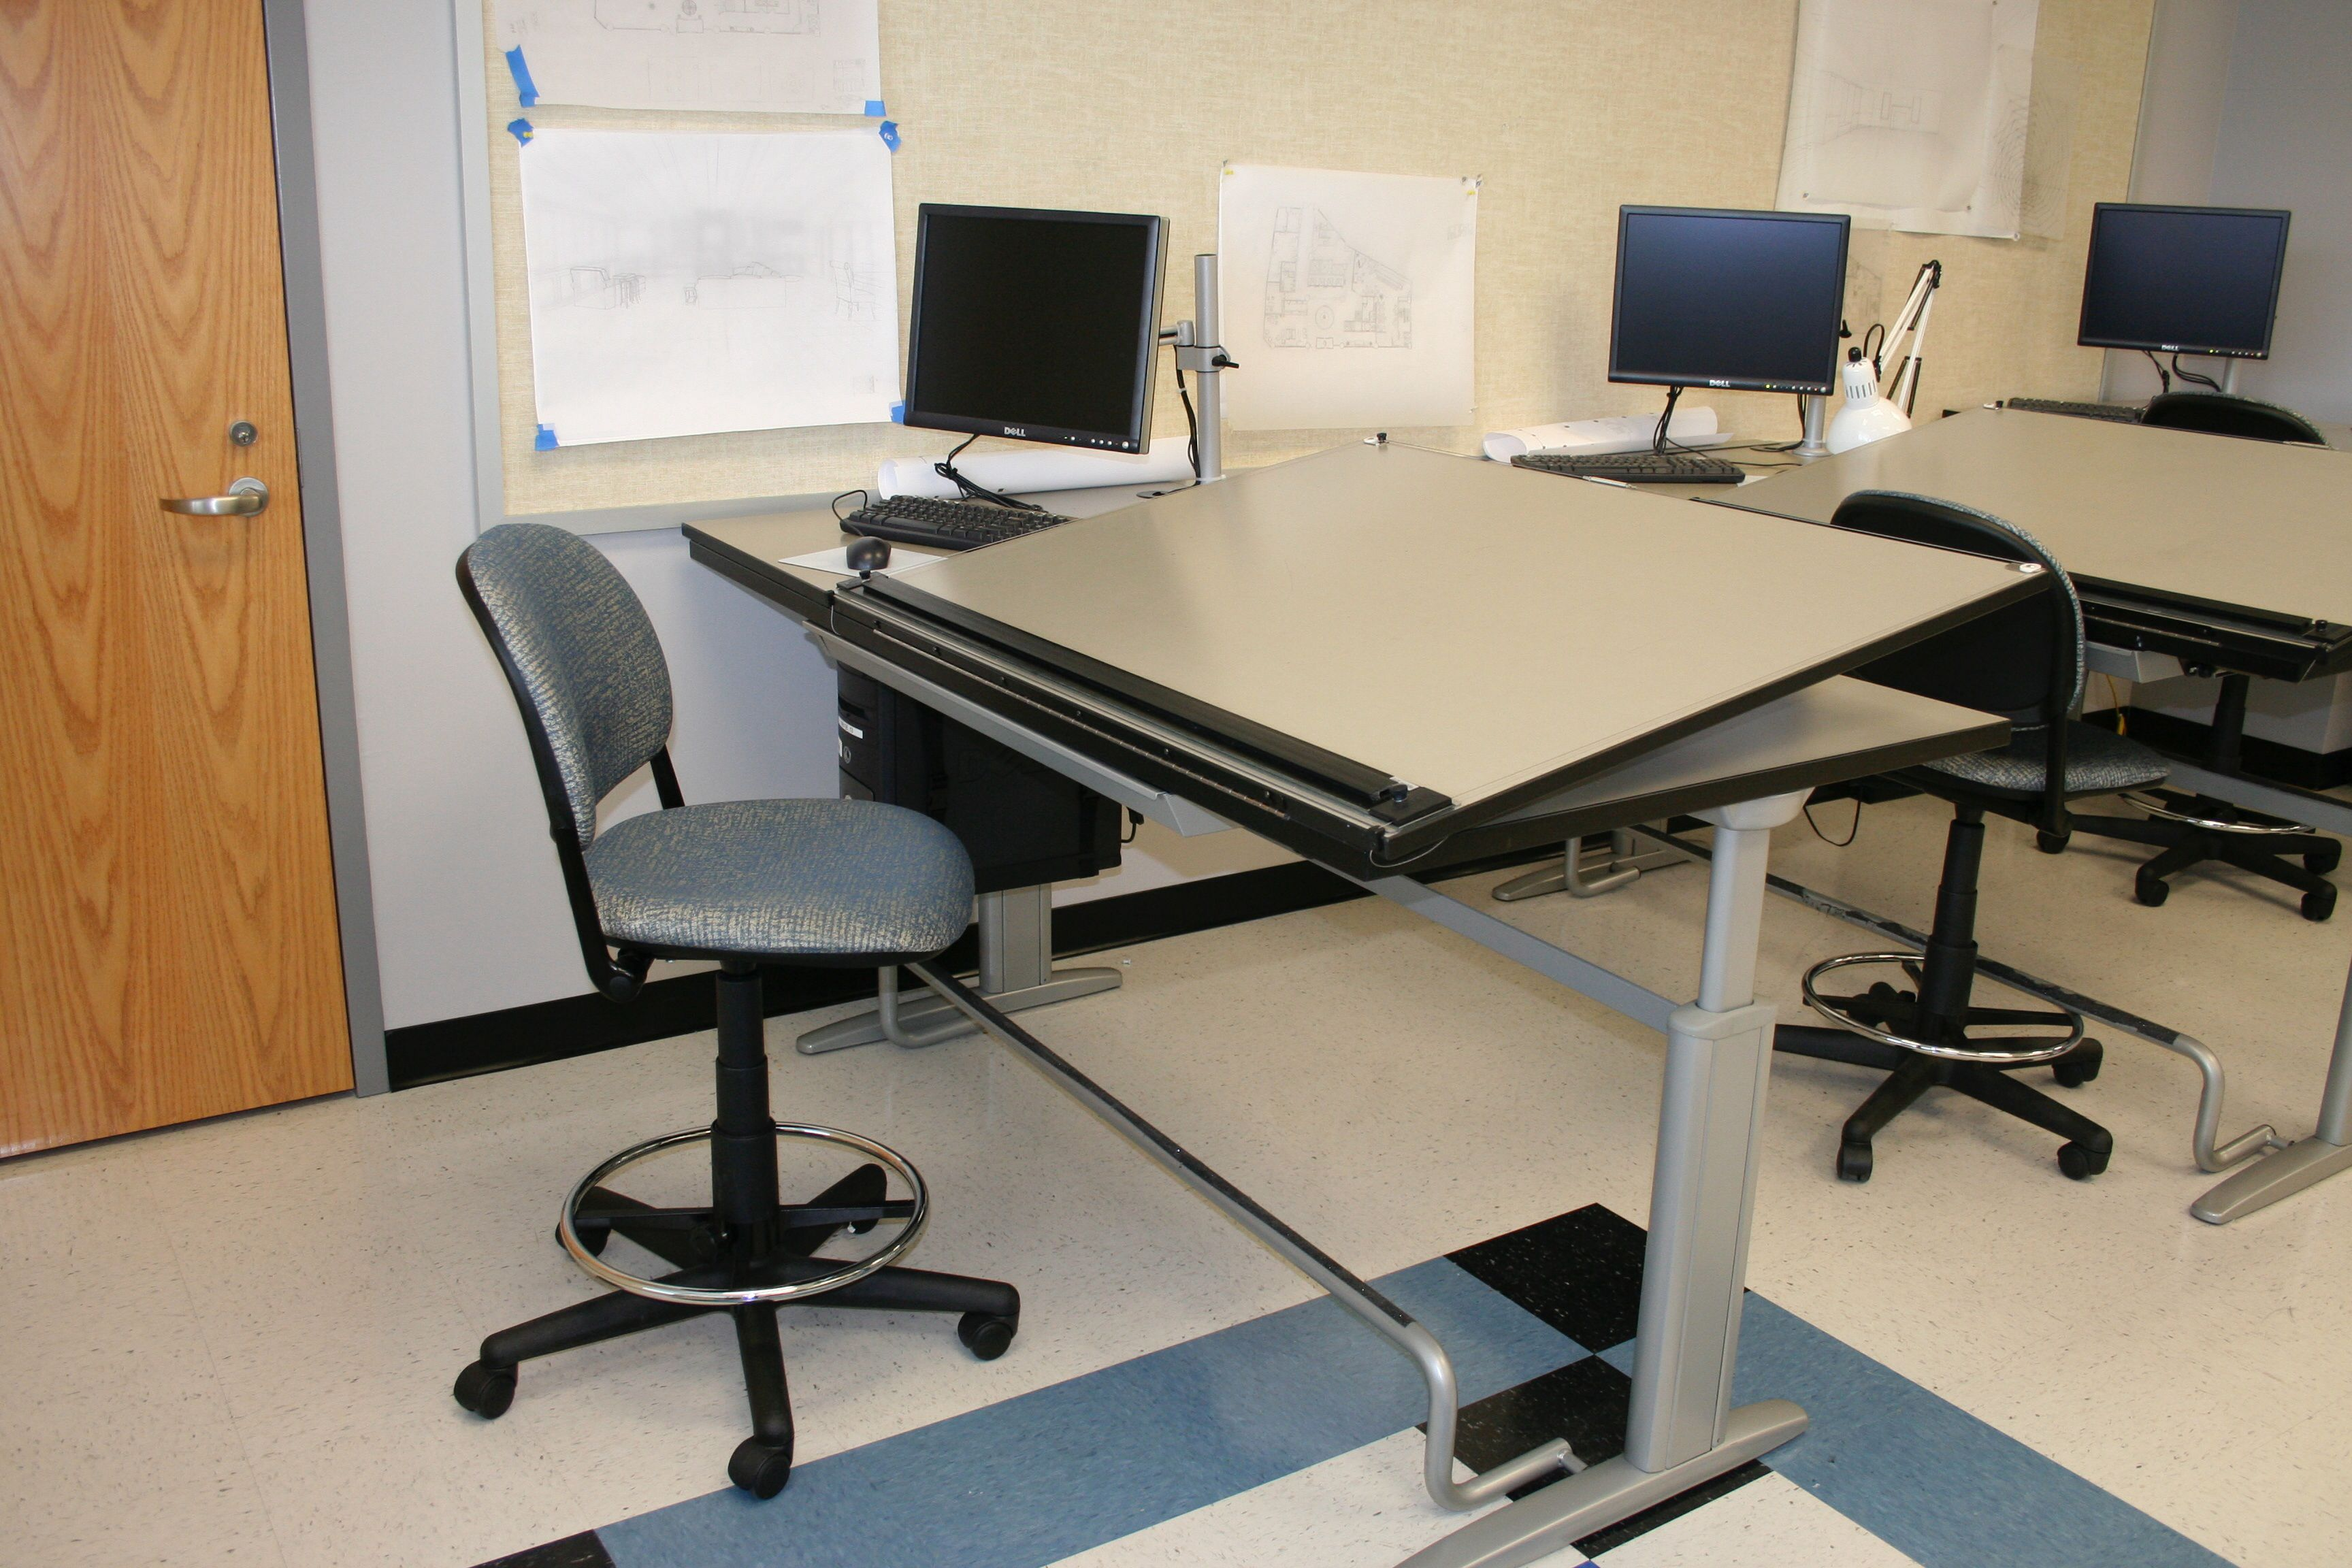 Adjustable Height Drafting Table Ki Drafting Table Adjustable Height Sit Stand Solutions